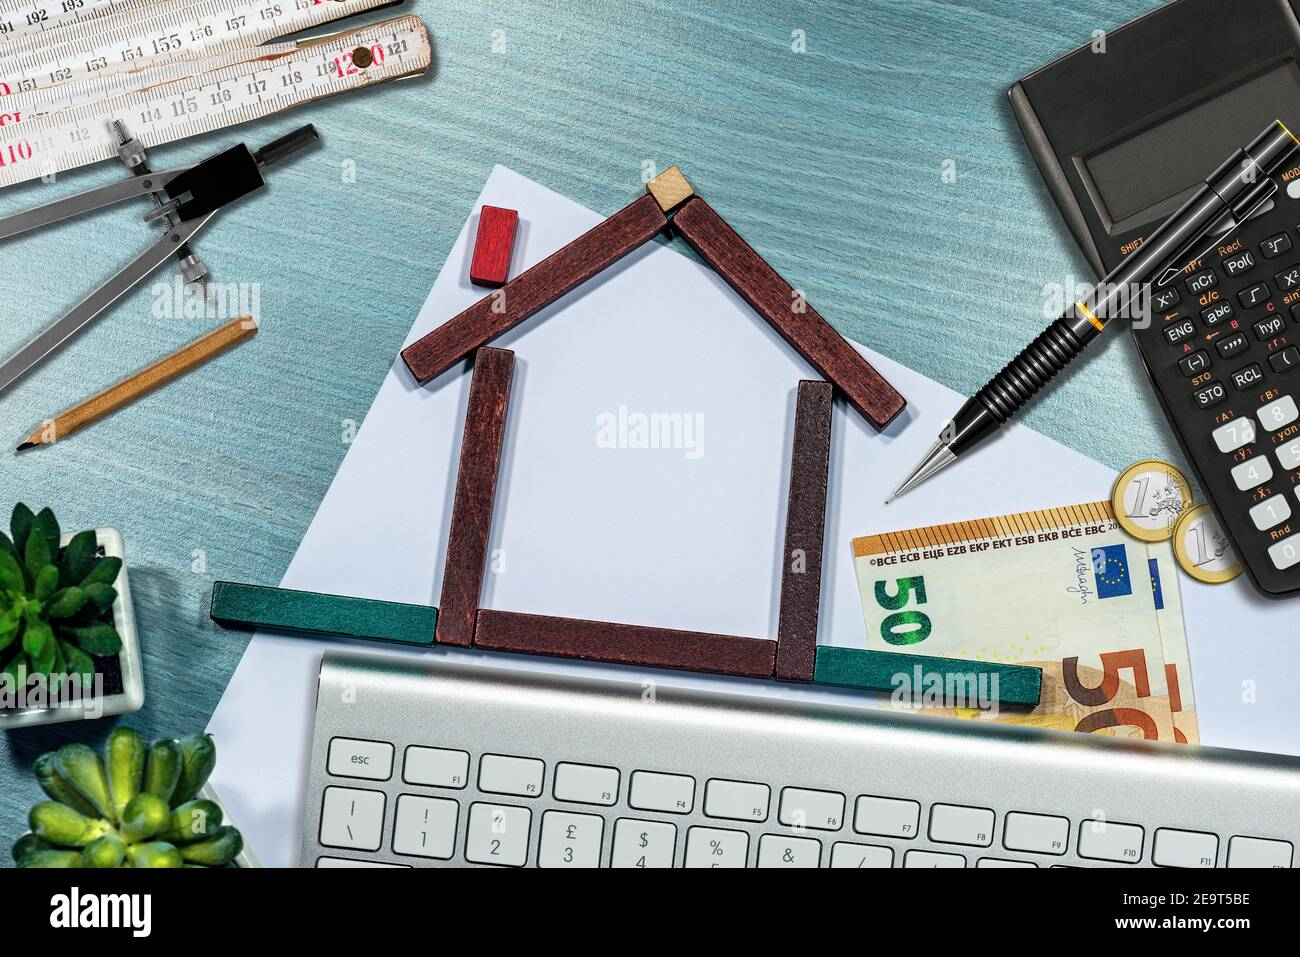 Small wooden house made of toy blocks on the desk, with Euro currency, calculator, folding ruler. Real estate investments concept. Stock Photo